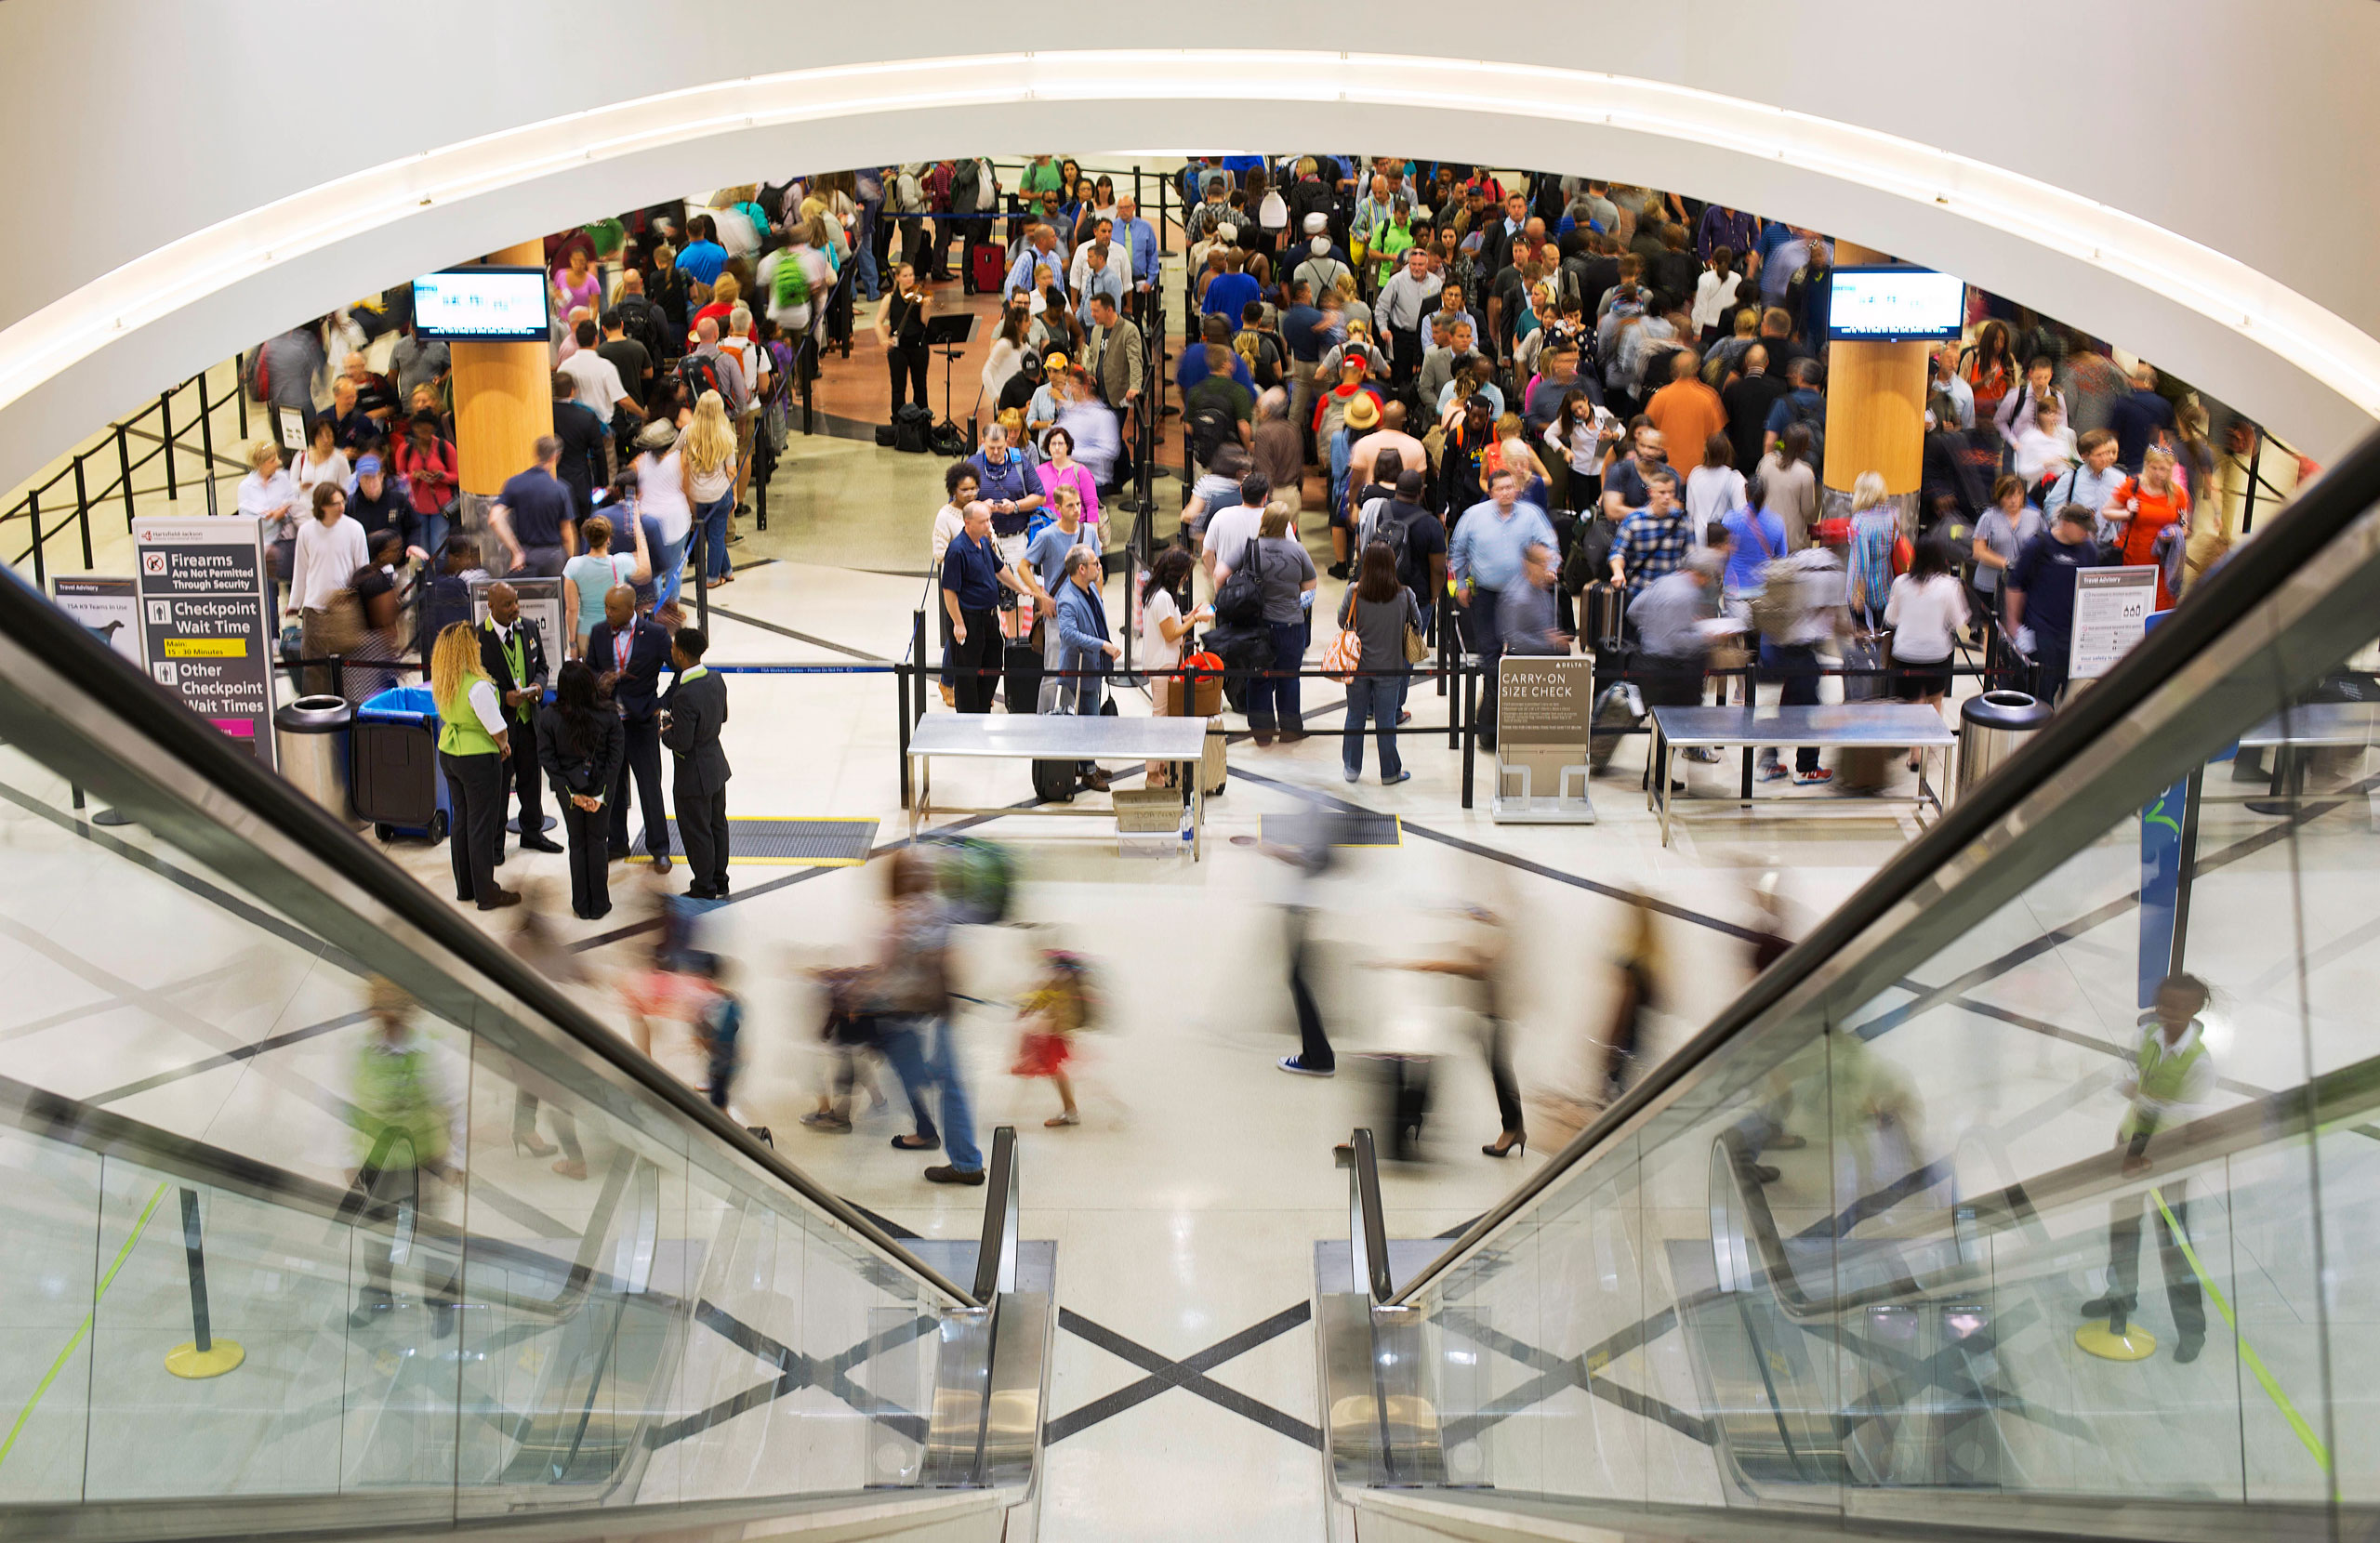 Earlier this summer, Atlanta's Hartsfield-Jackson International Airport had massive security line delays; it's seen improvement under a new system that is now being tested